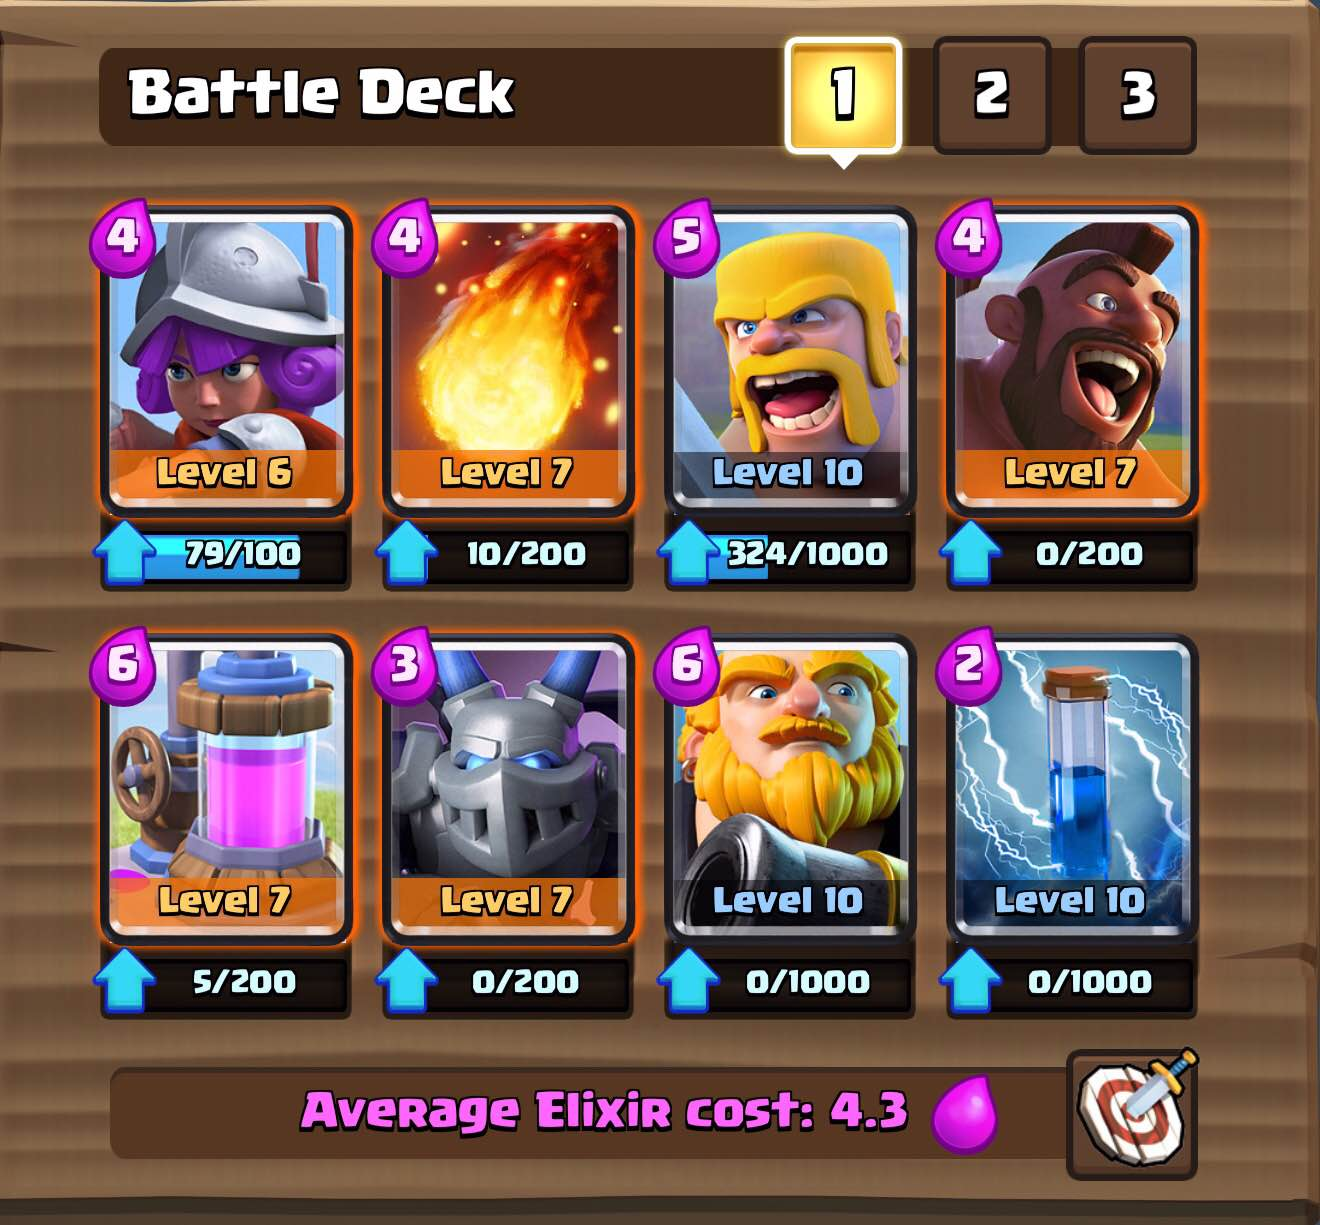 Royal Giant Hog Deck For Arena 7 And 8 Clash For Dummies